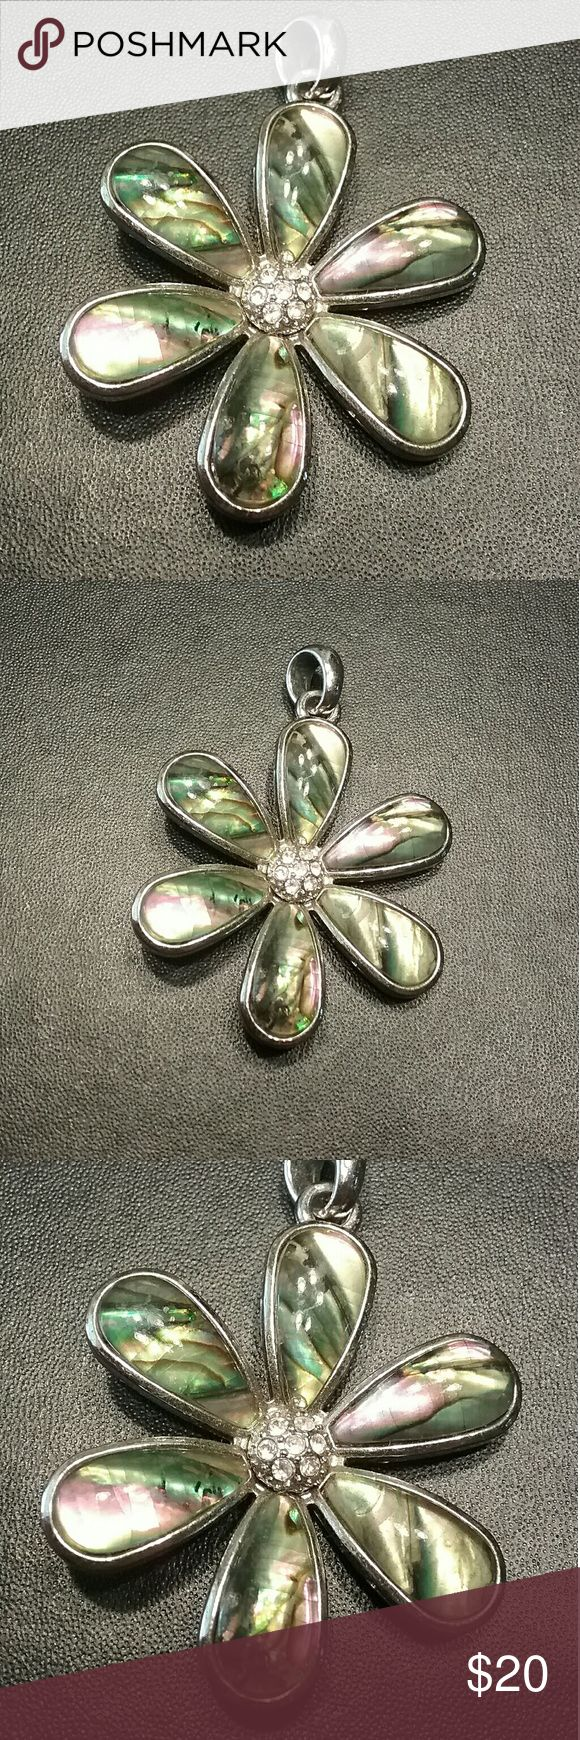 Lia Sophia abalone she'll flower necklace In great shape Like new Will come with chain 4676 Lia Sophia Jewelry Necklaces